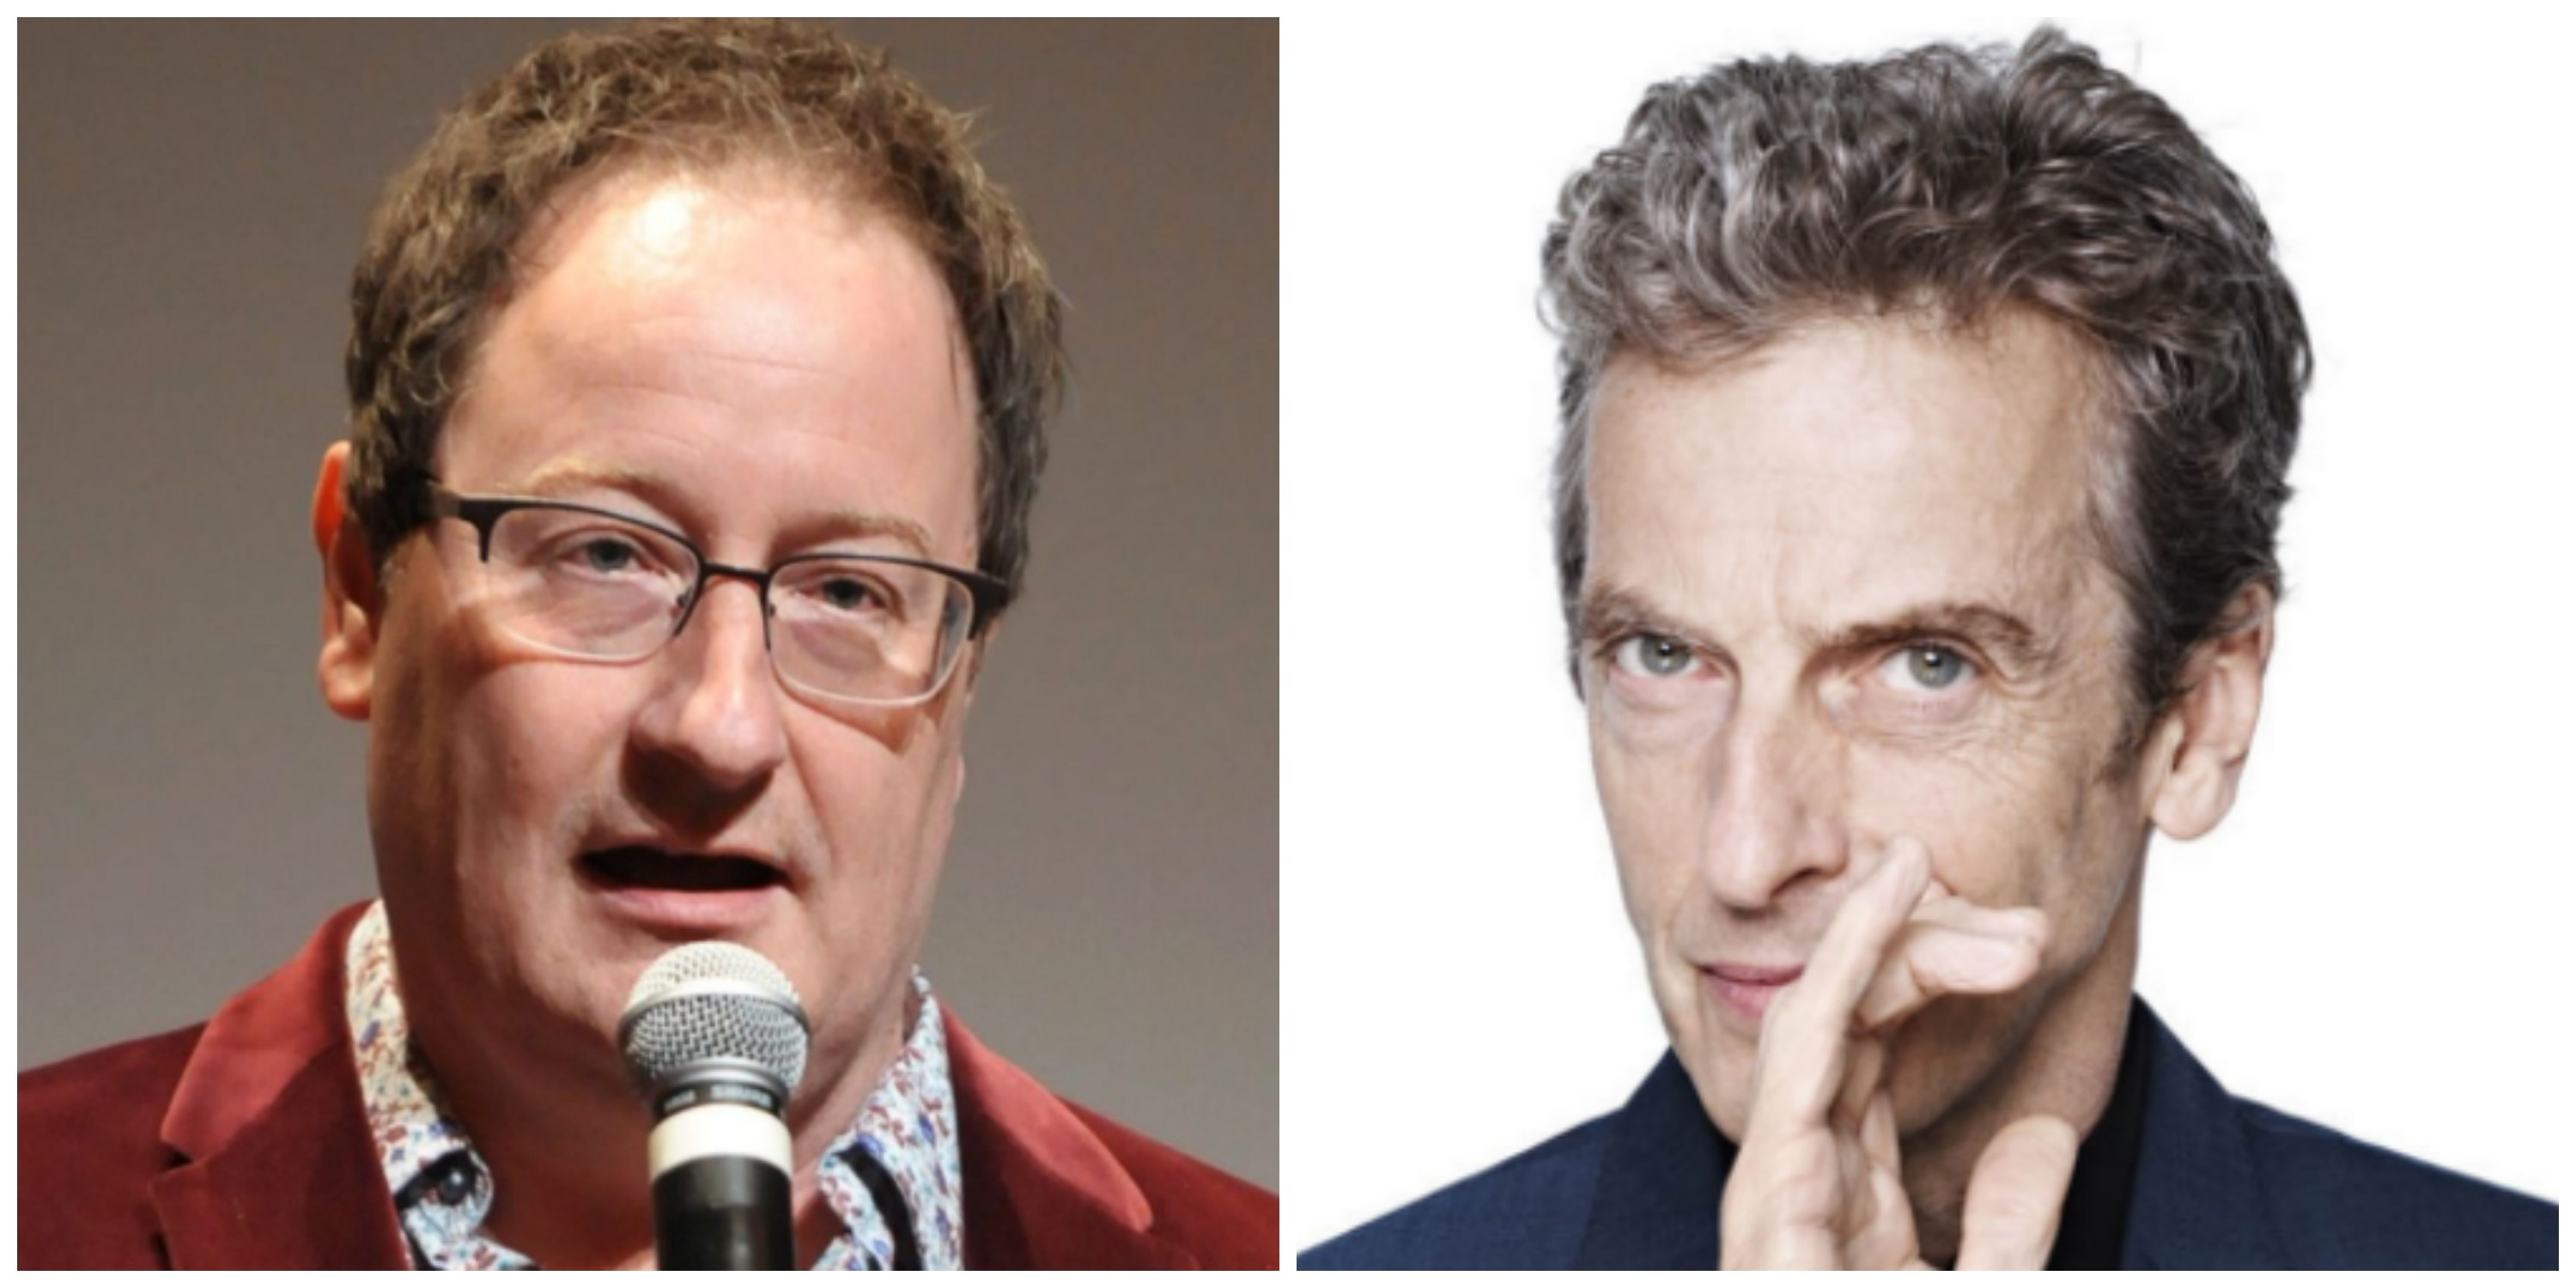 LEFT: New 'Doctor Who' showrunner Chris Chibnall. RIGHT: Current star Peter Capaldi.